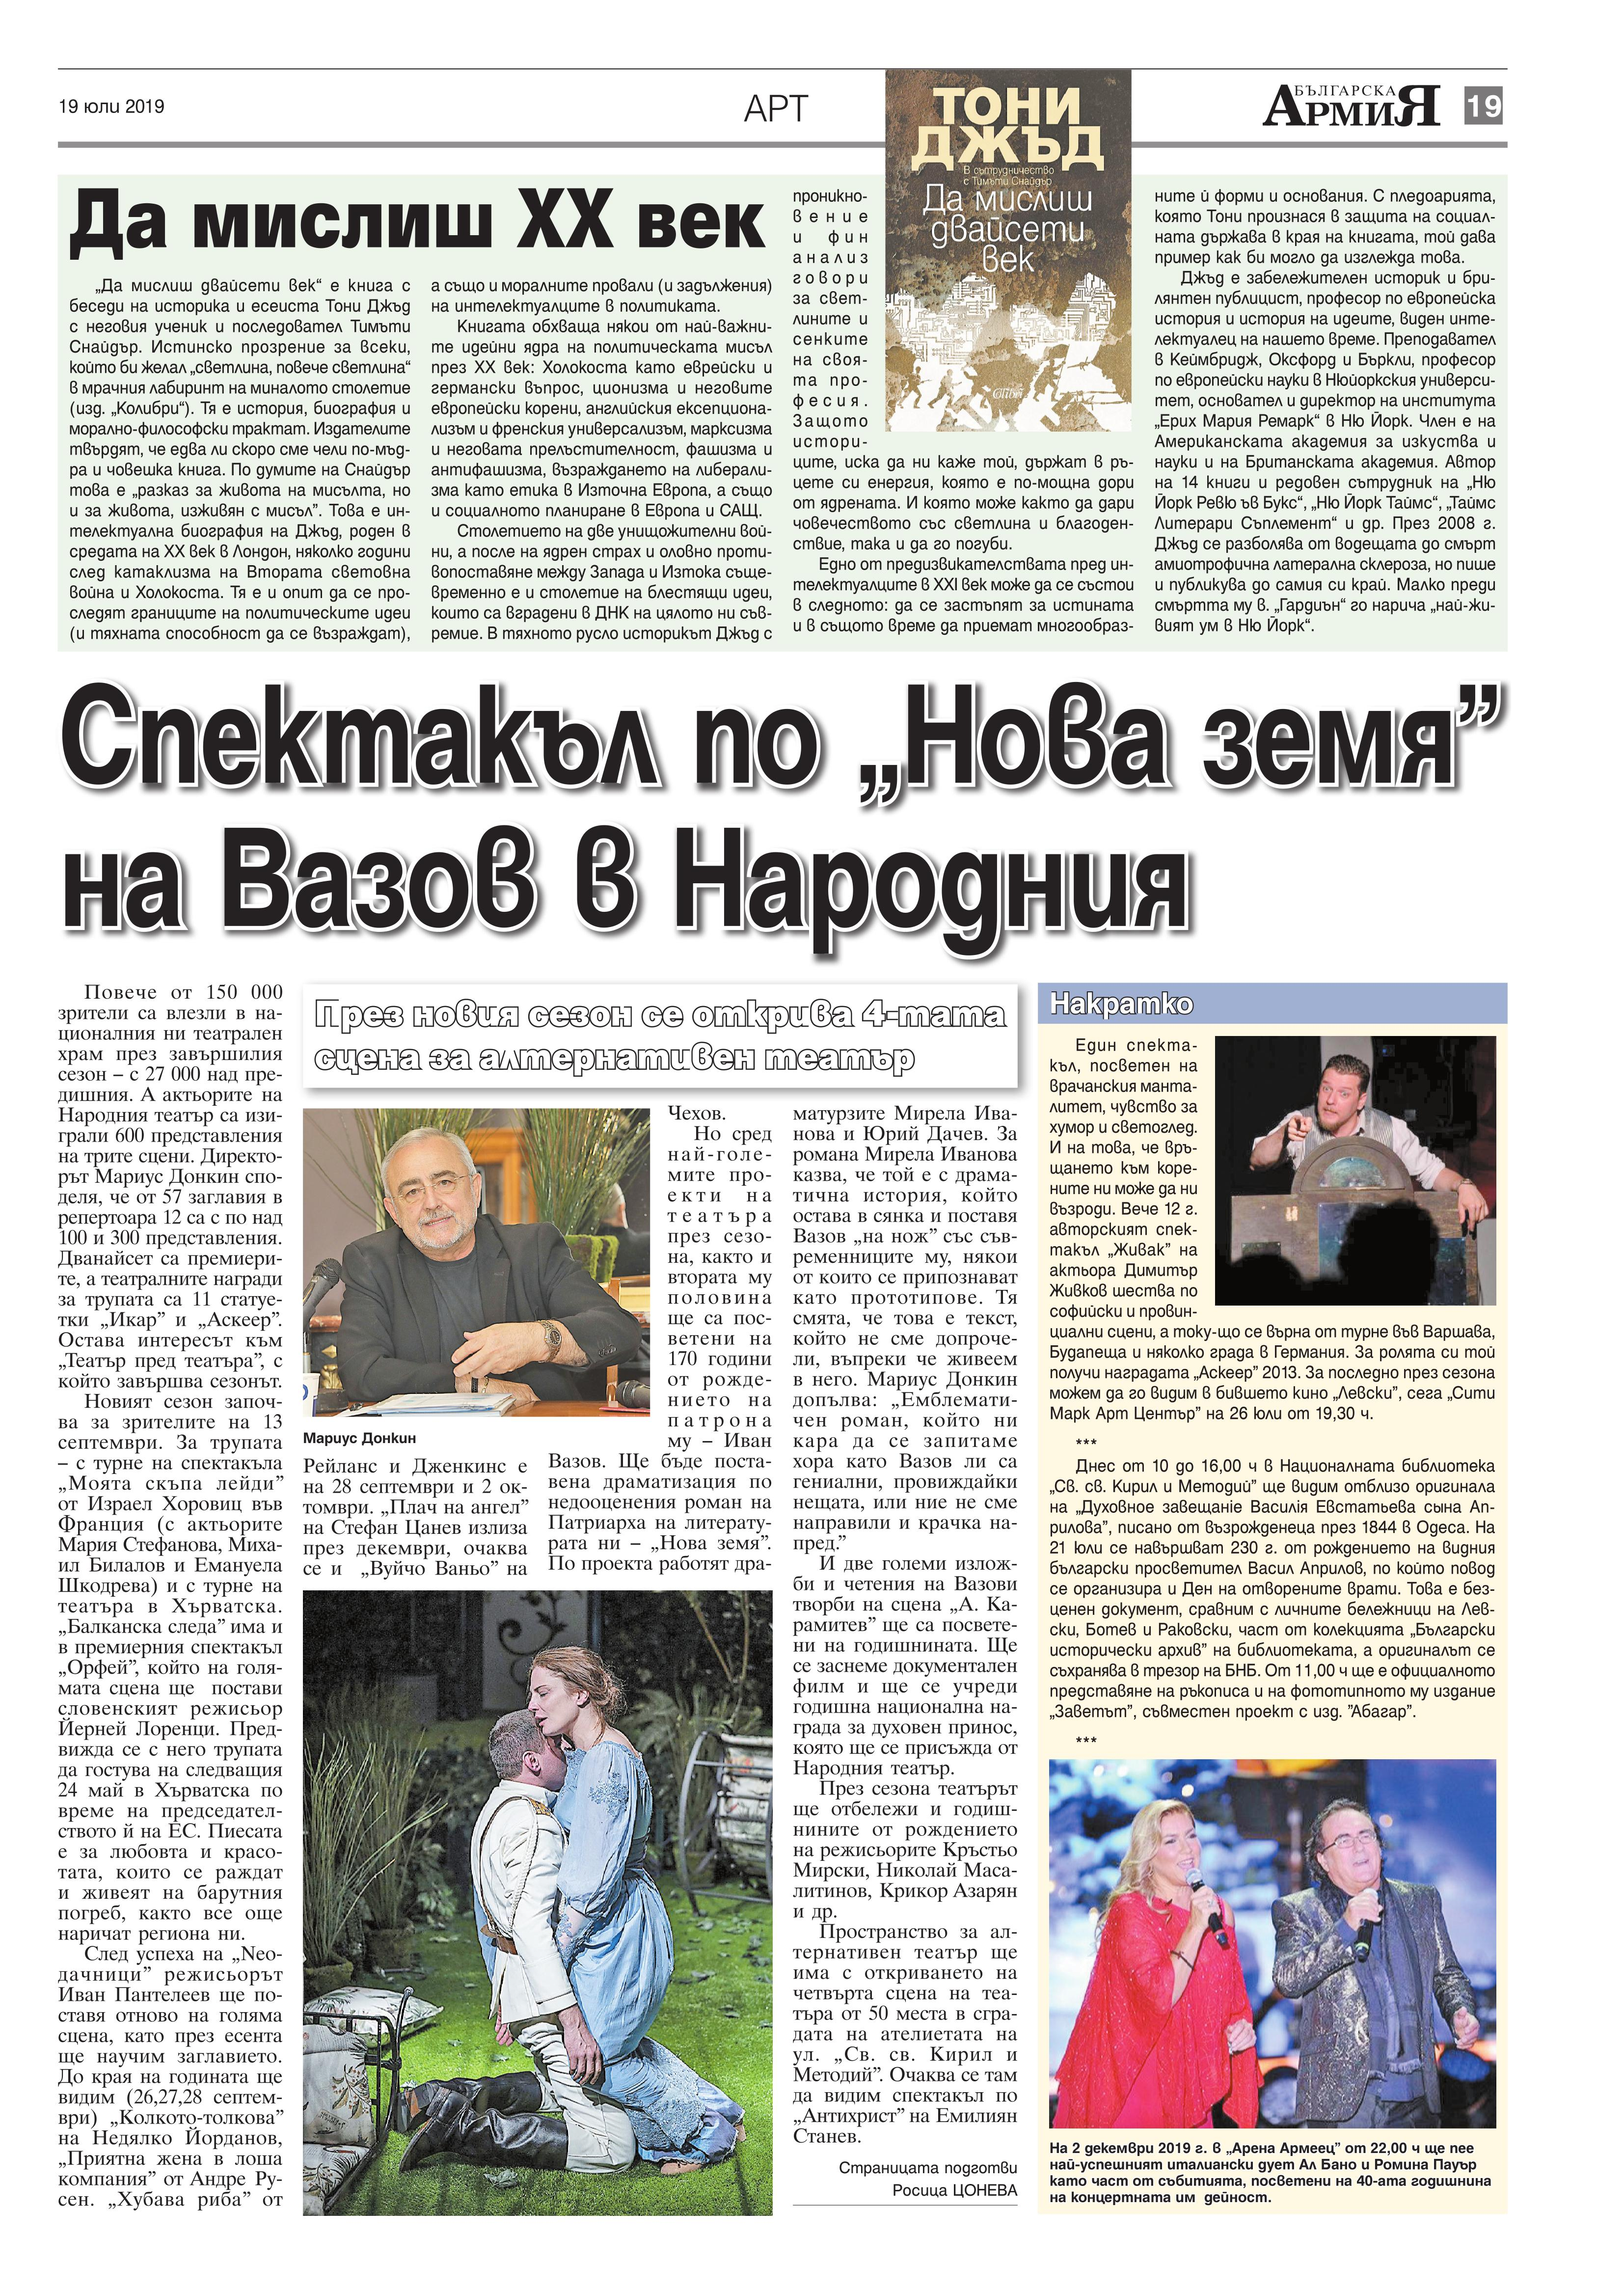 https://armymedia.bg/wp-content/uploads/2015/06/19.page1_-104.jpg